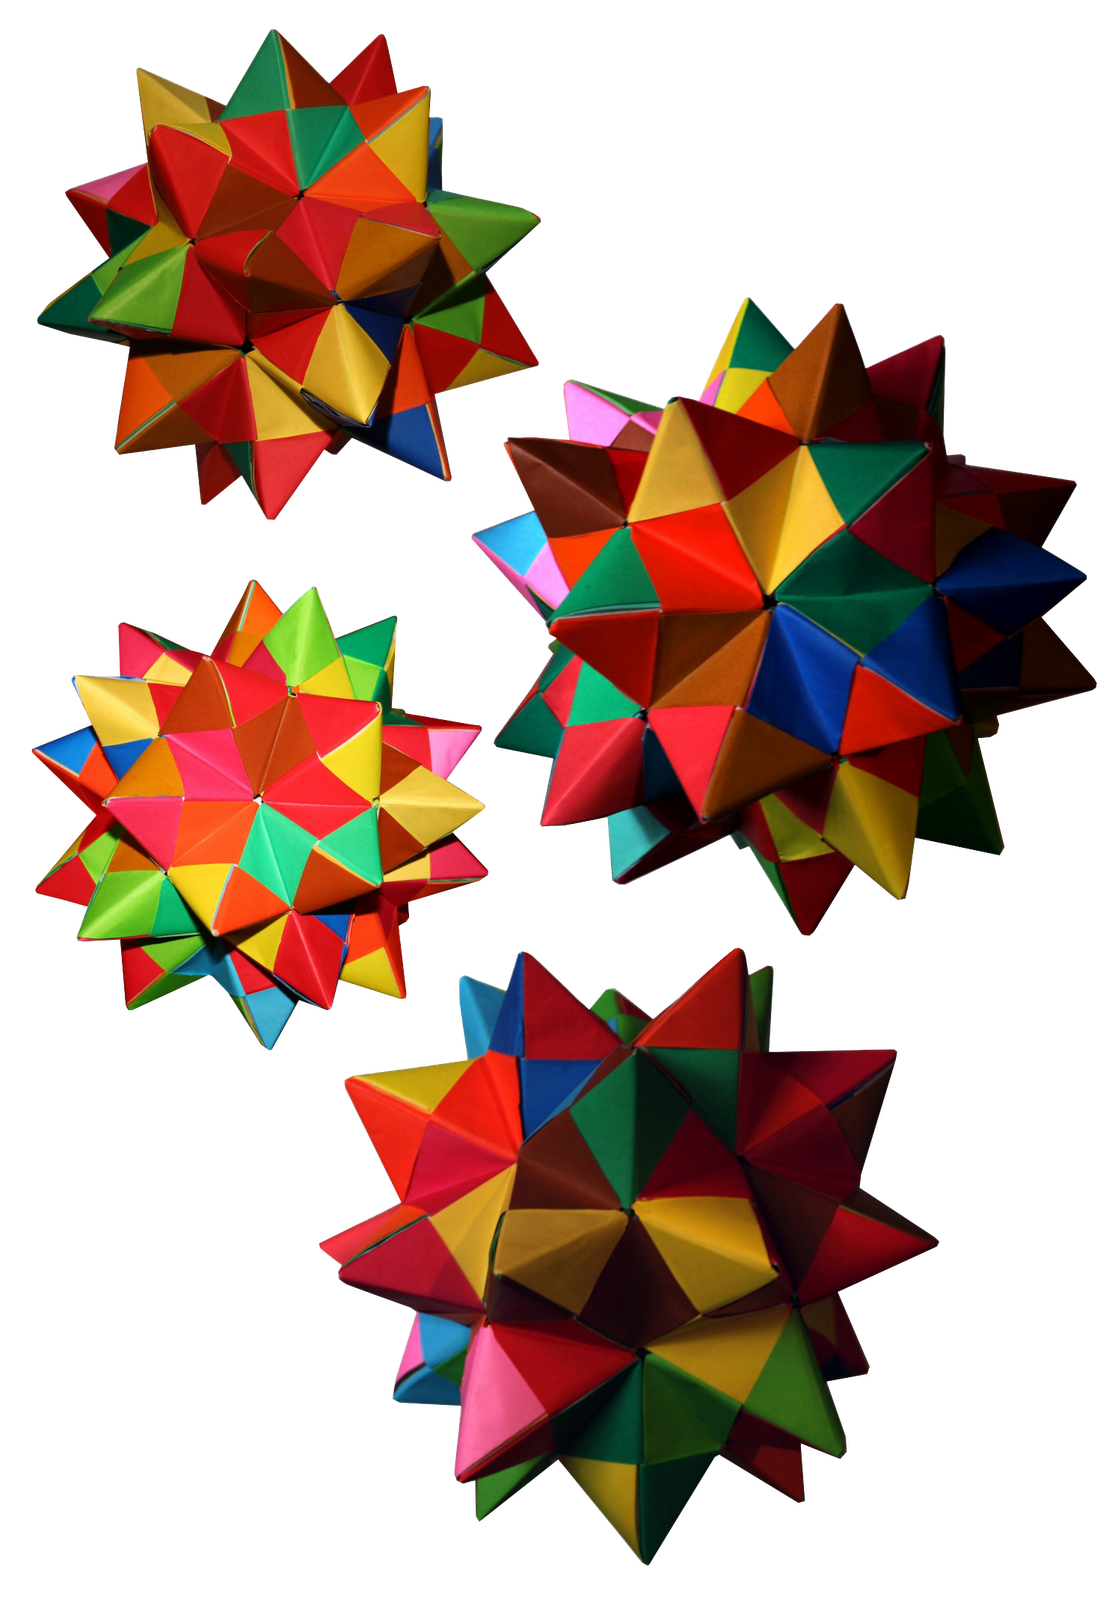 Origami Maniacs Spiked Pentakis Dodecahedron By Tomoko Fuse Diagrams